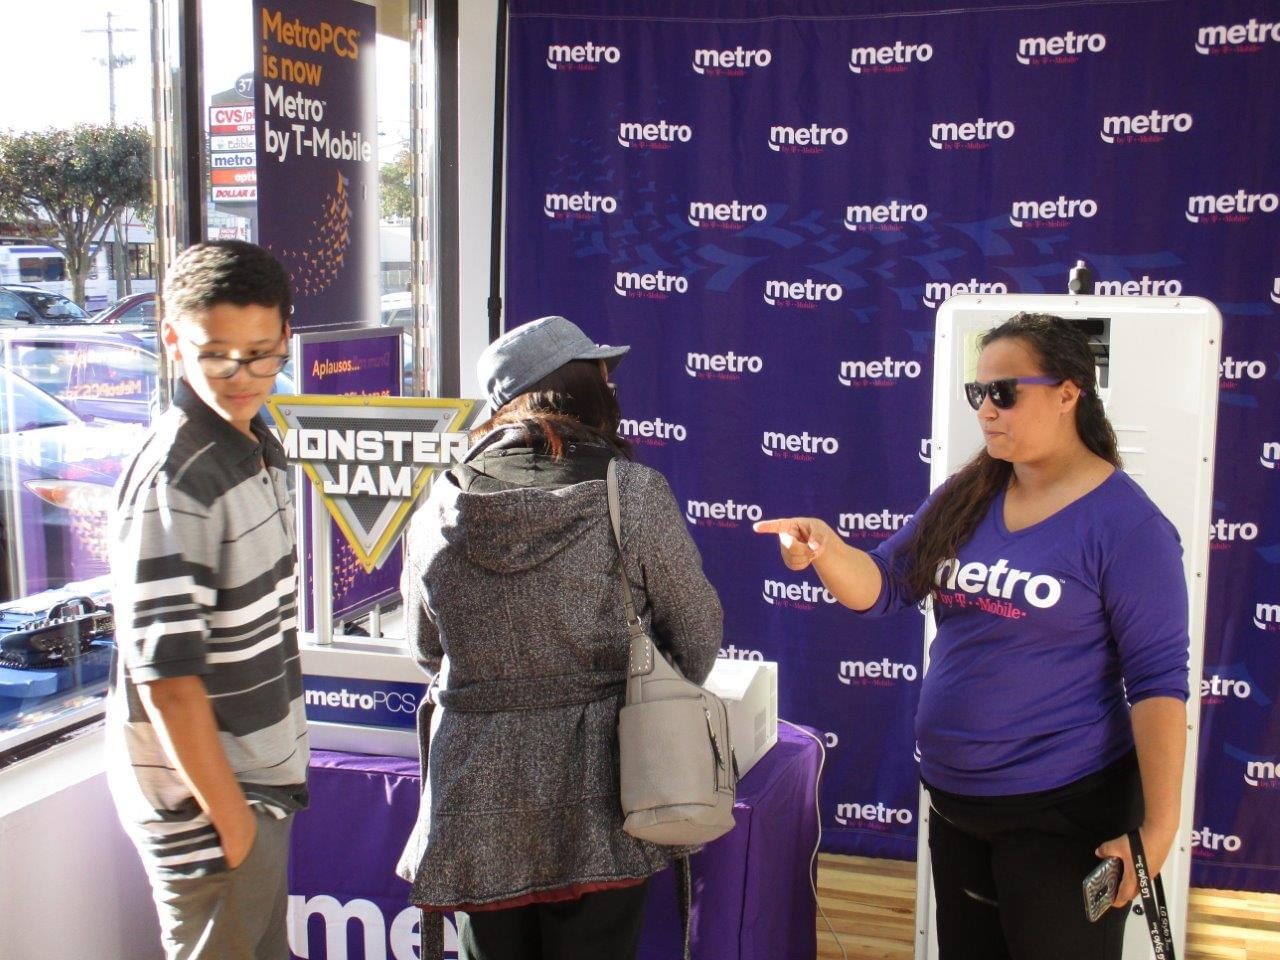 metro by t mobile